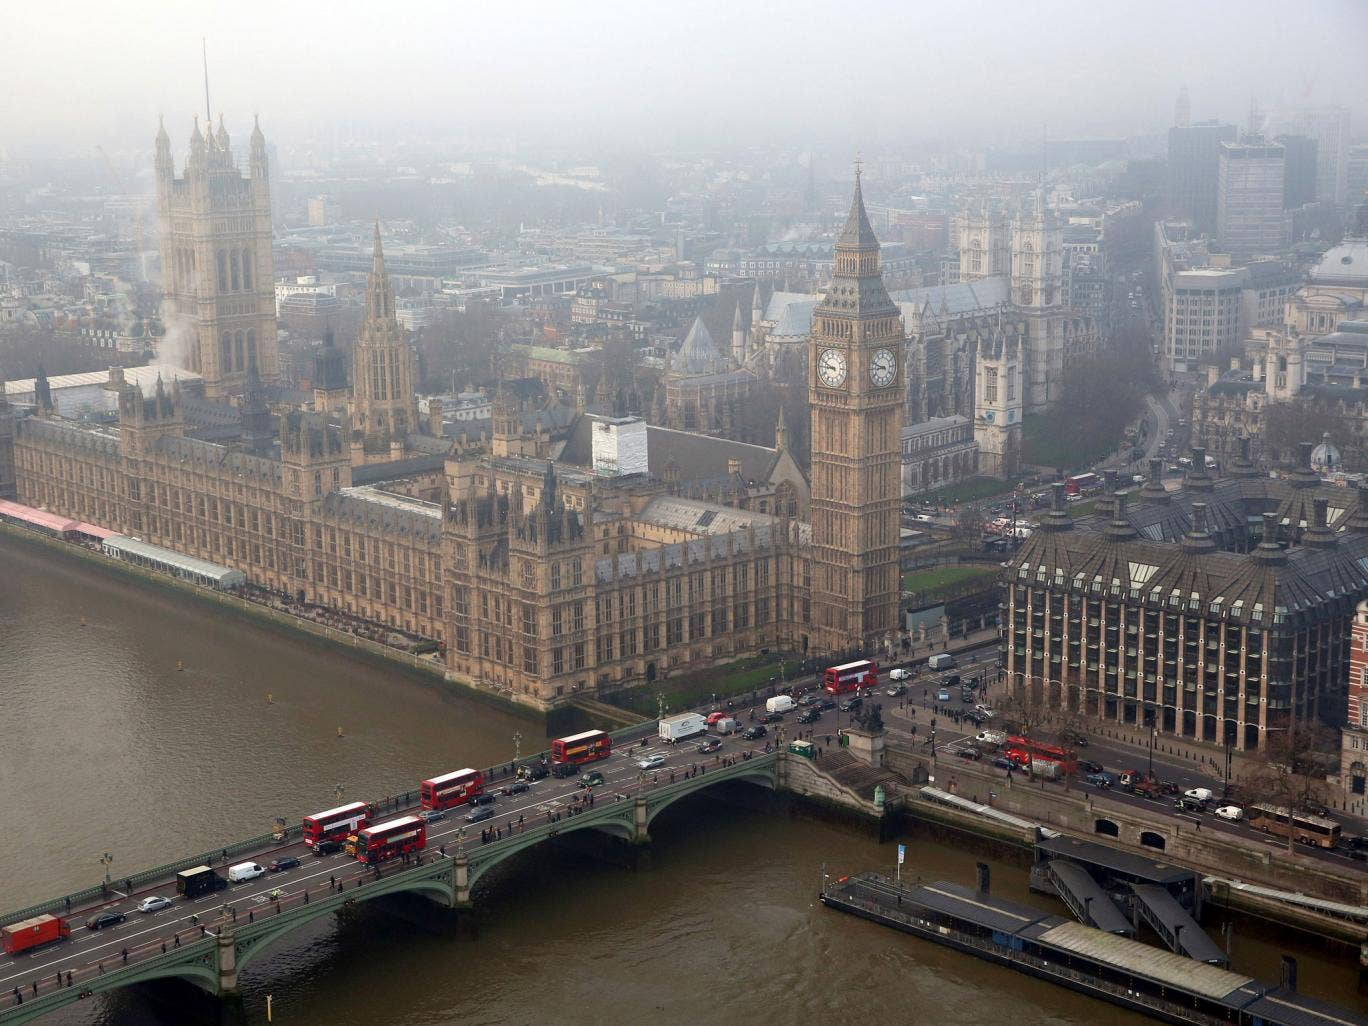 The Houses of Parliament and the river Thames are shrouded in early morning fog